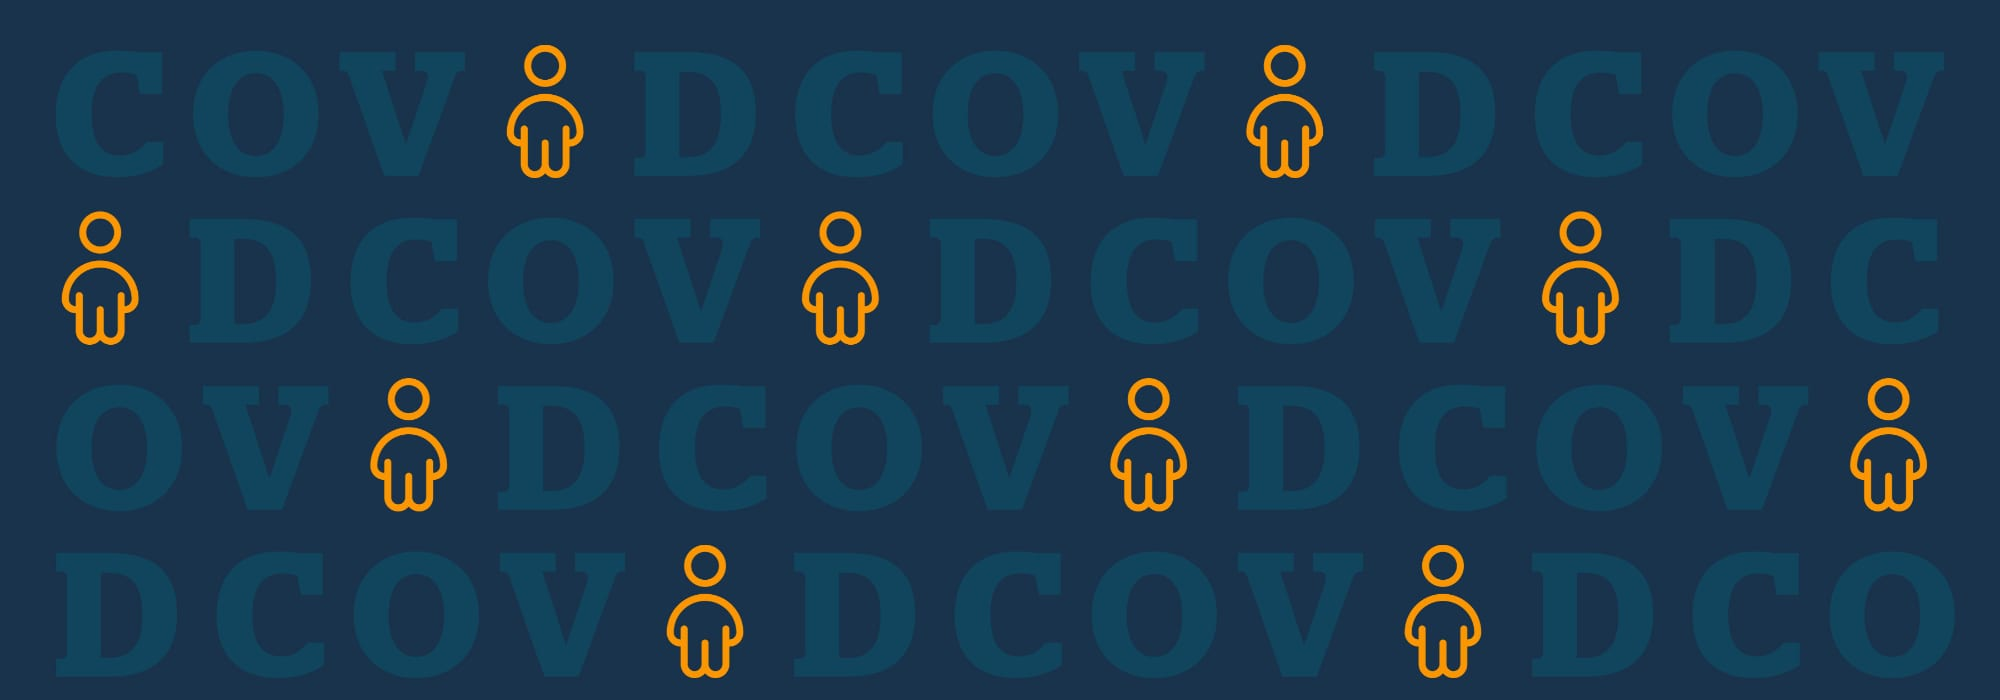 COVID illustration with icons of people